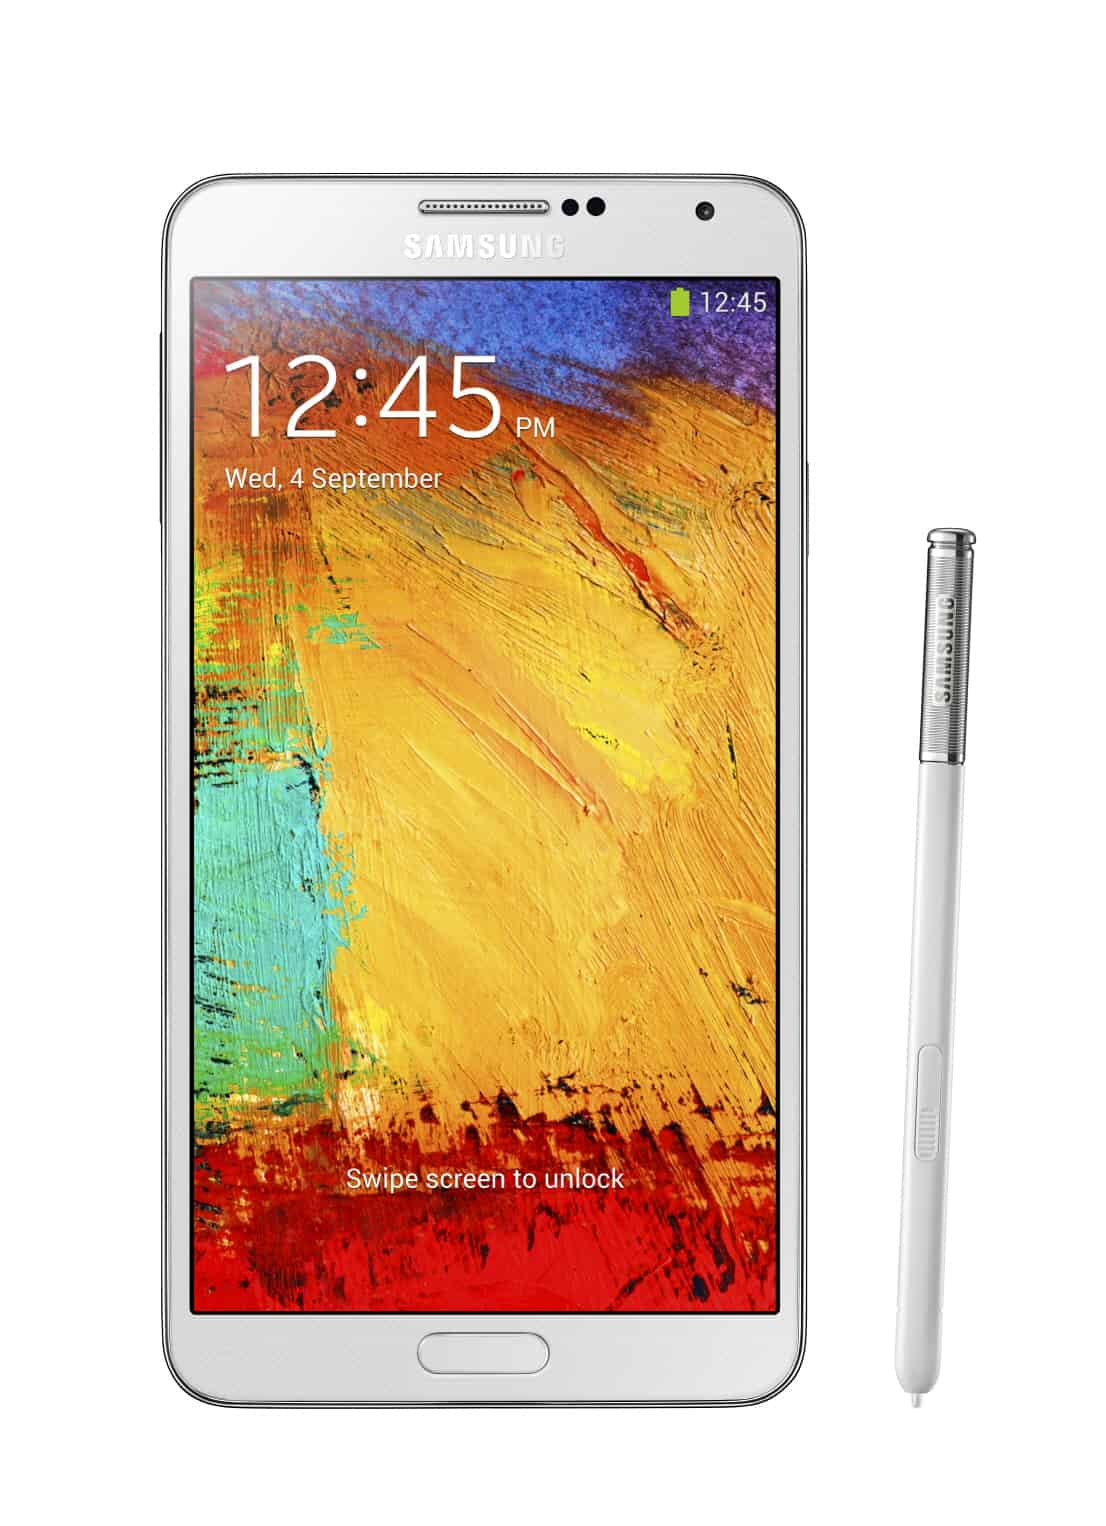 Galxy Note3 002 front with pen Classic White